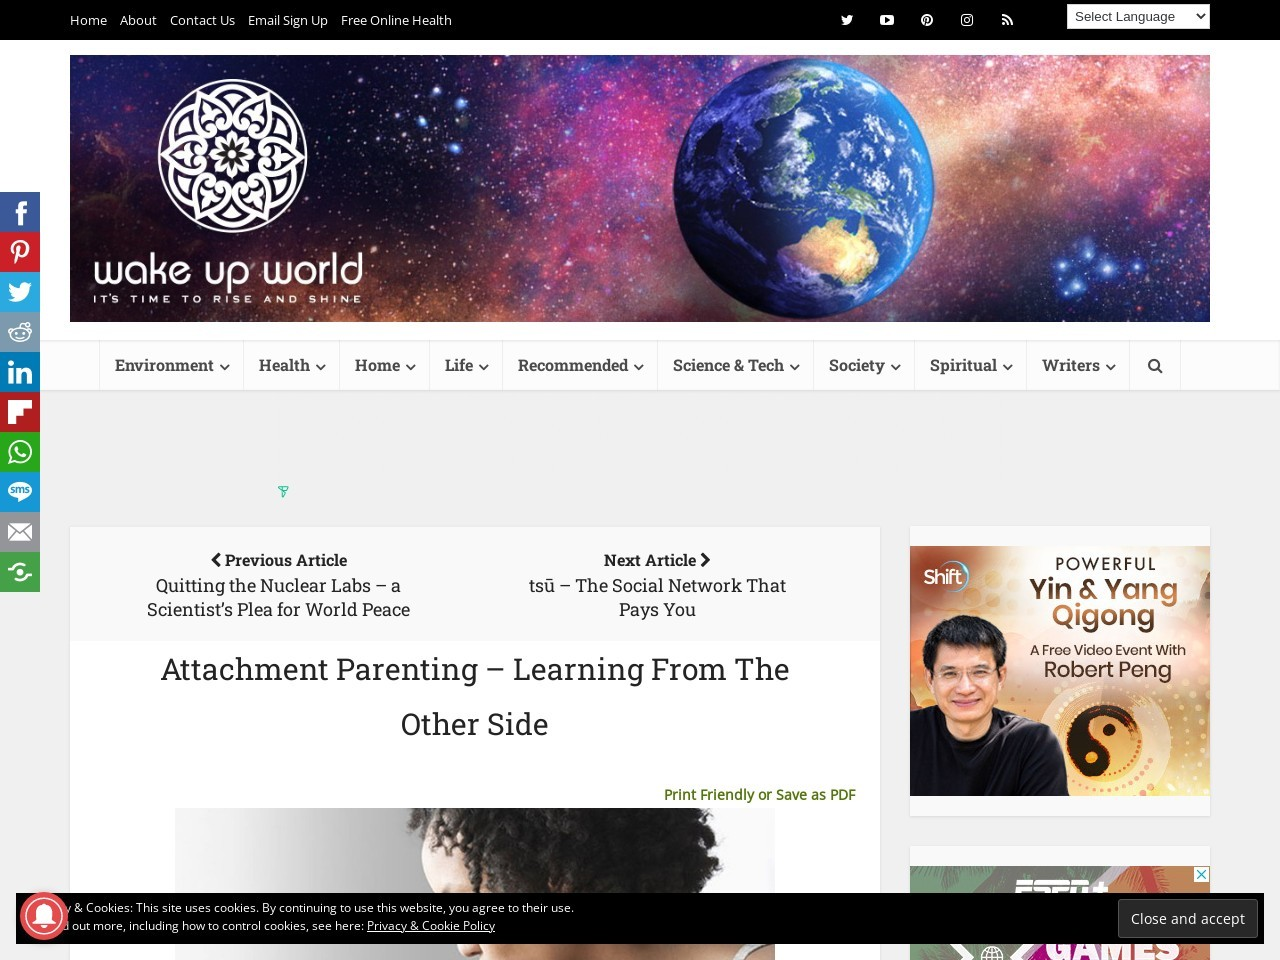 Attachment Parenting – Learning From The Other Side …